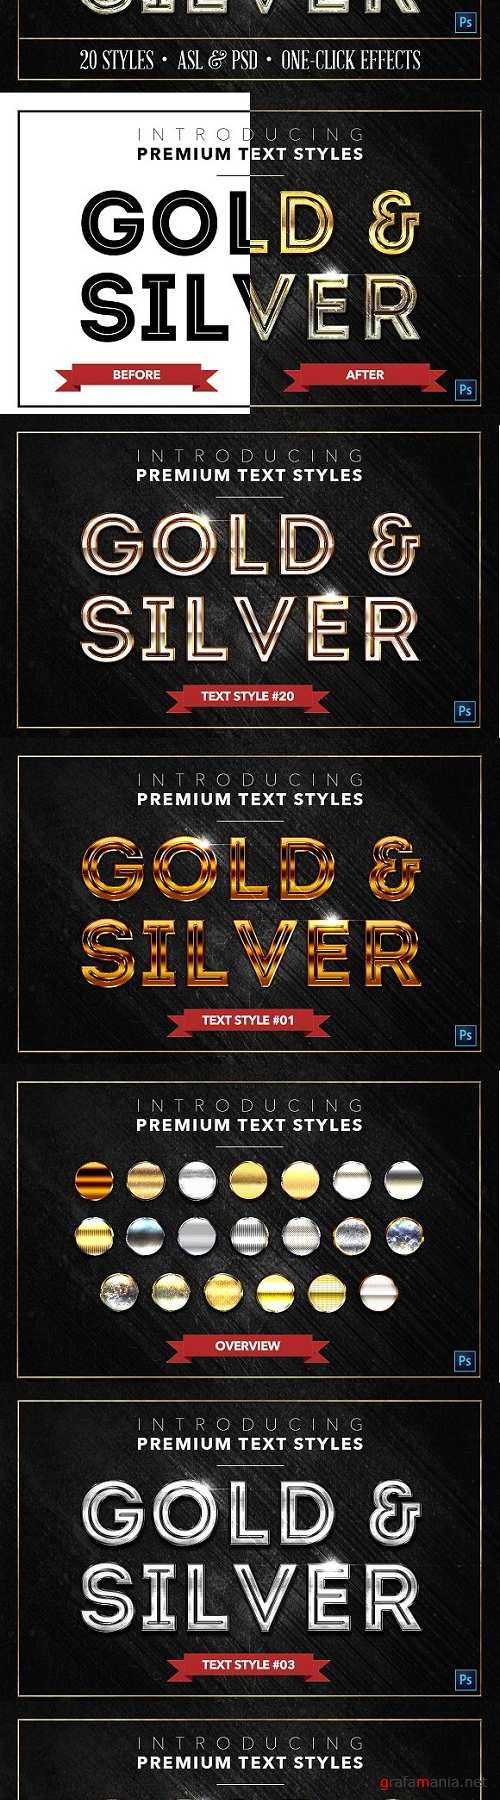 Gold & Silver #2 - 20 Text Styles - 1278366